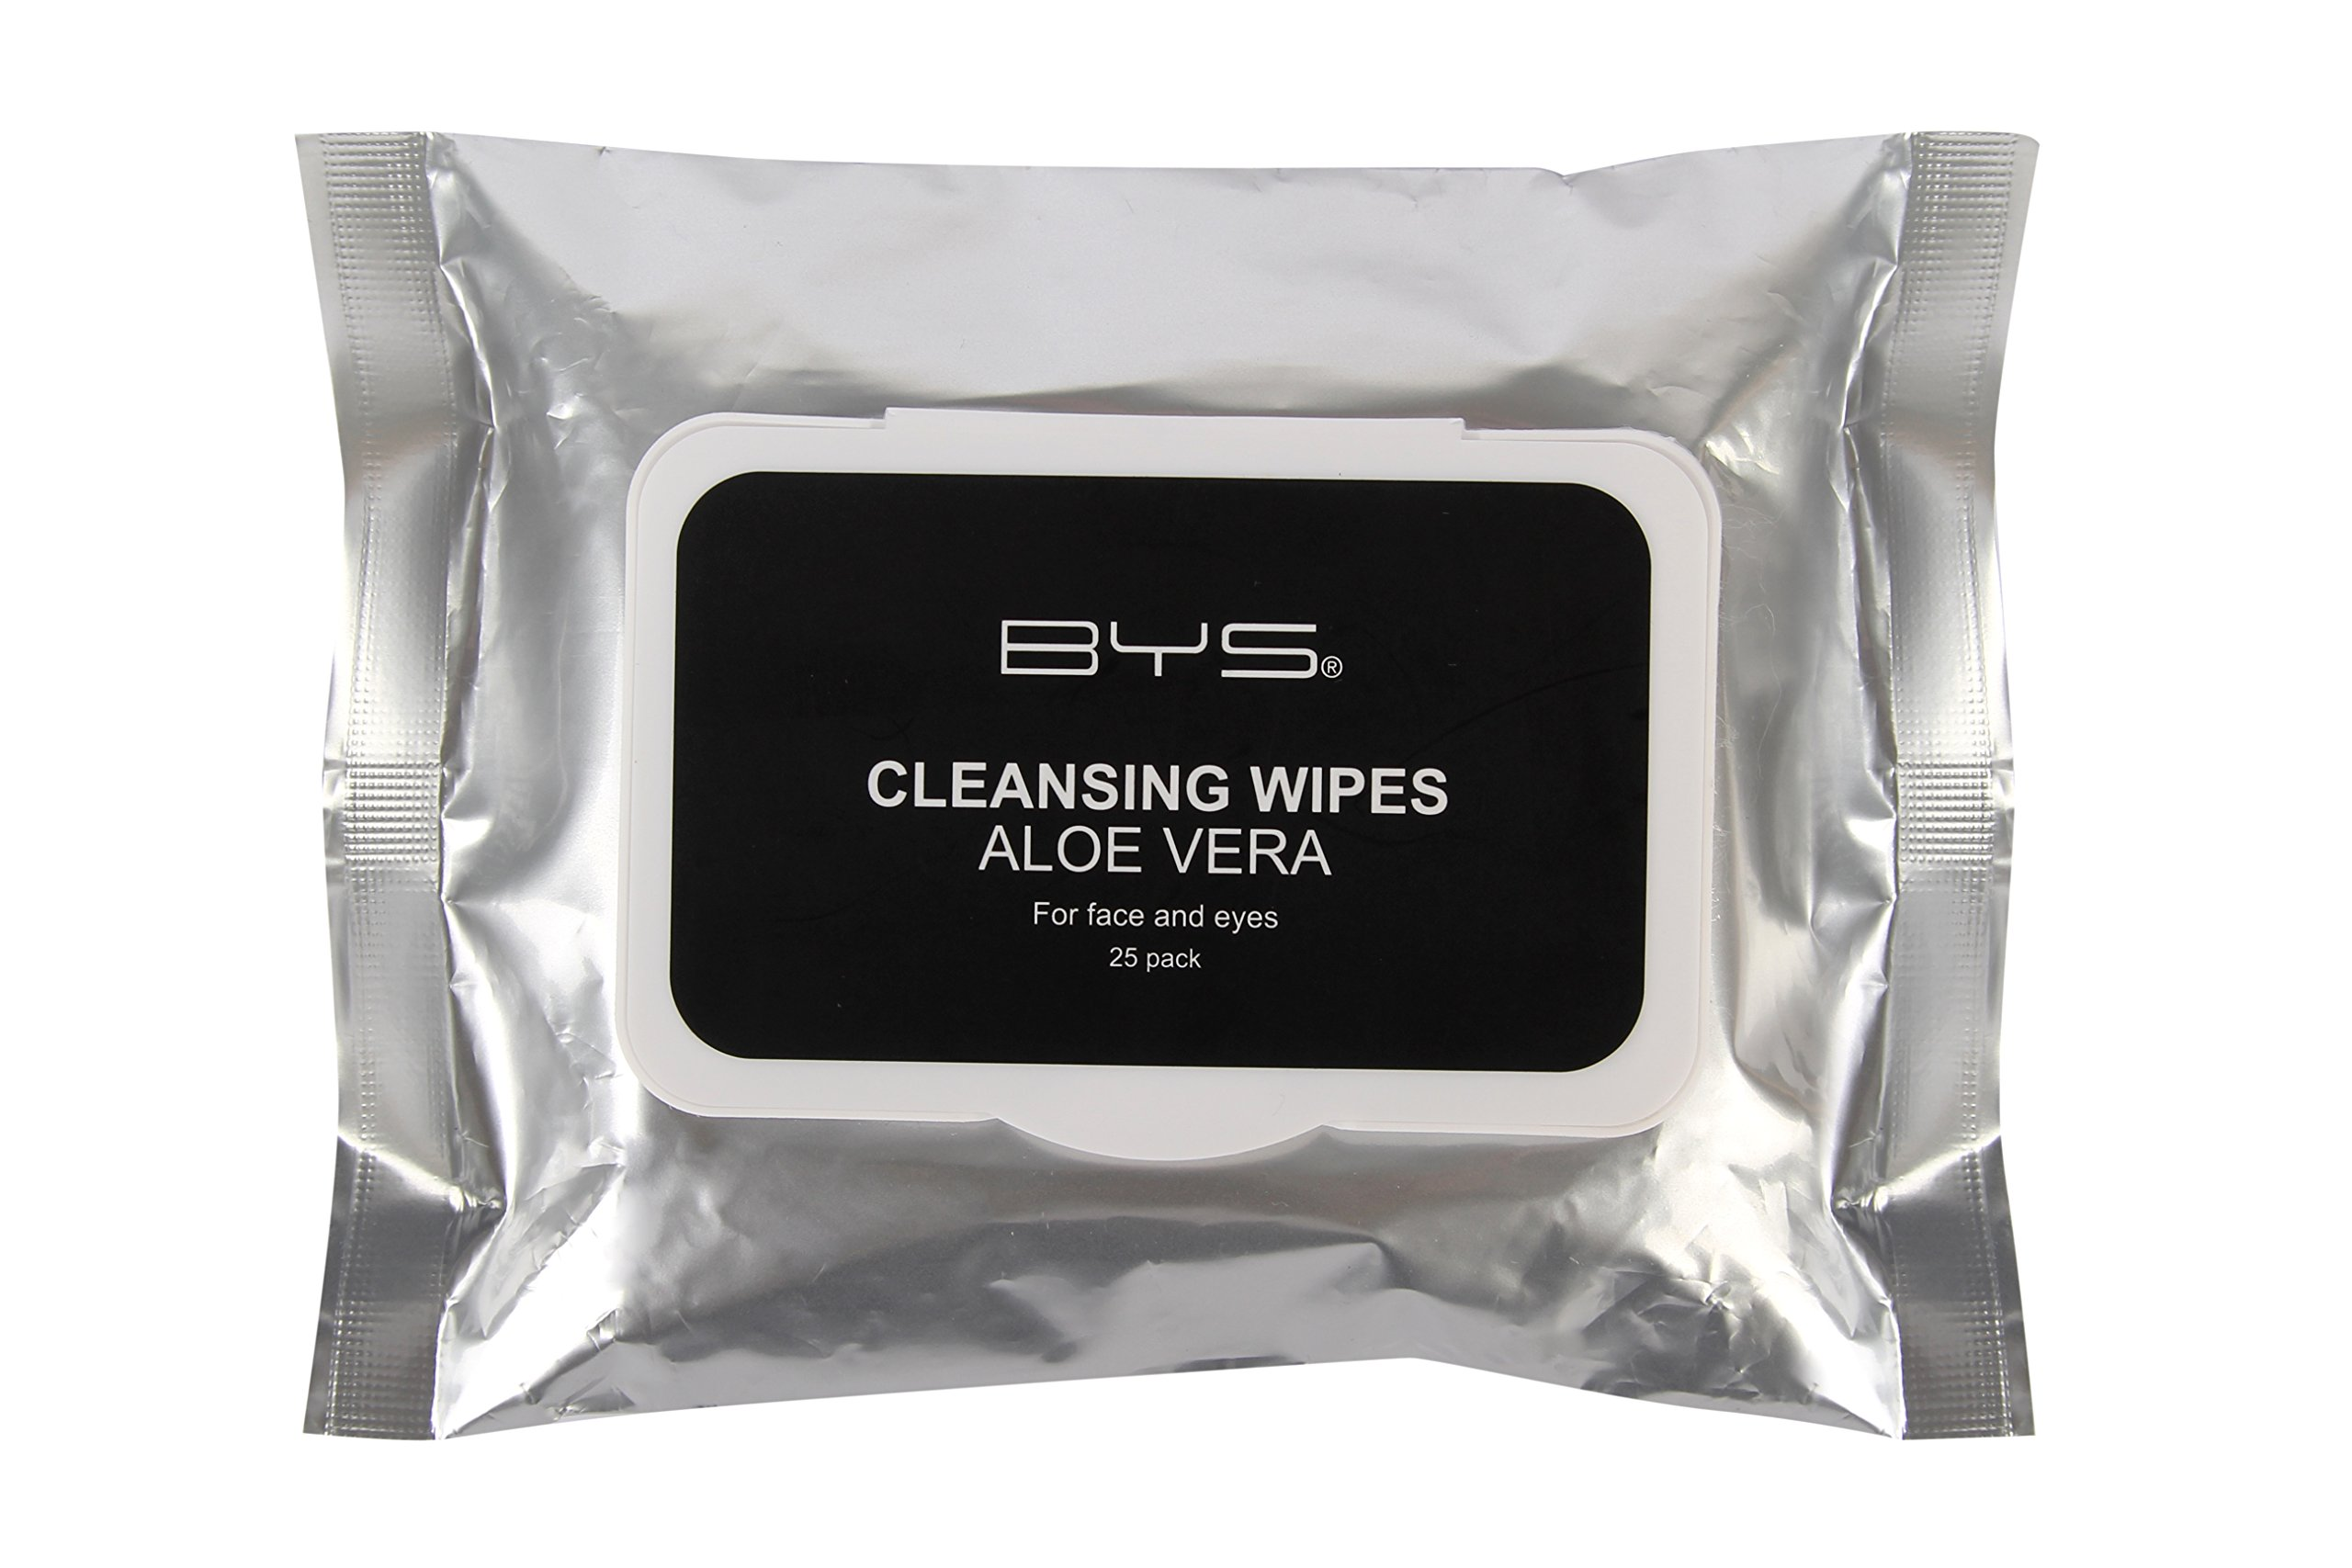 BYS Makeup Remover Cleansing Wipes with Aloe Vera and Vitamin E for Face and Eyes - 25 Pack